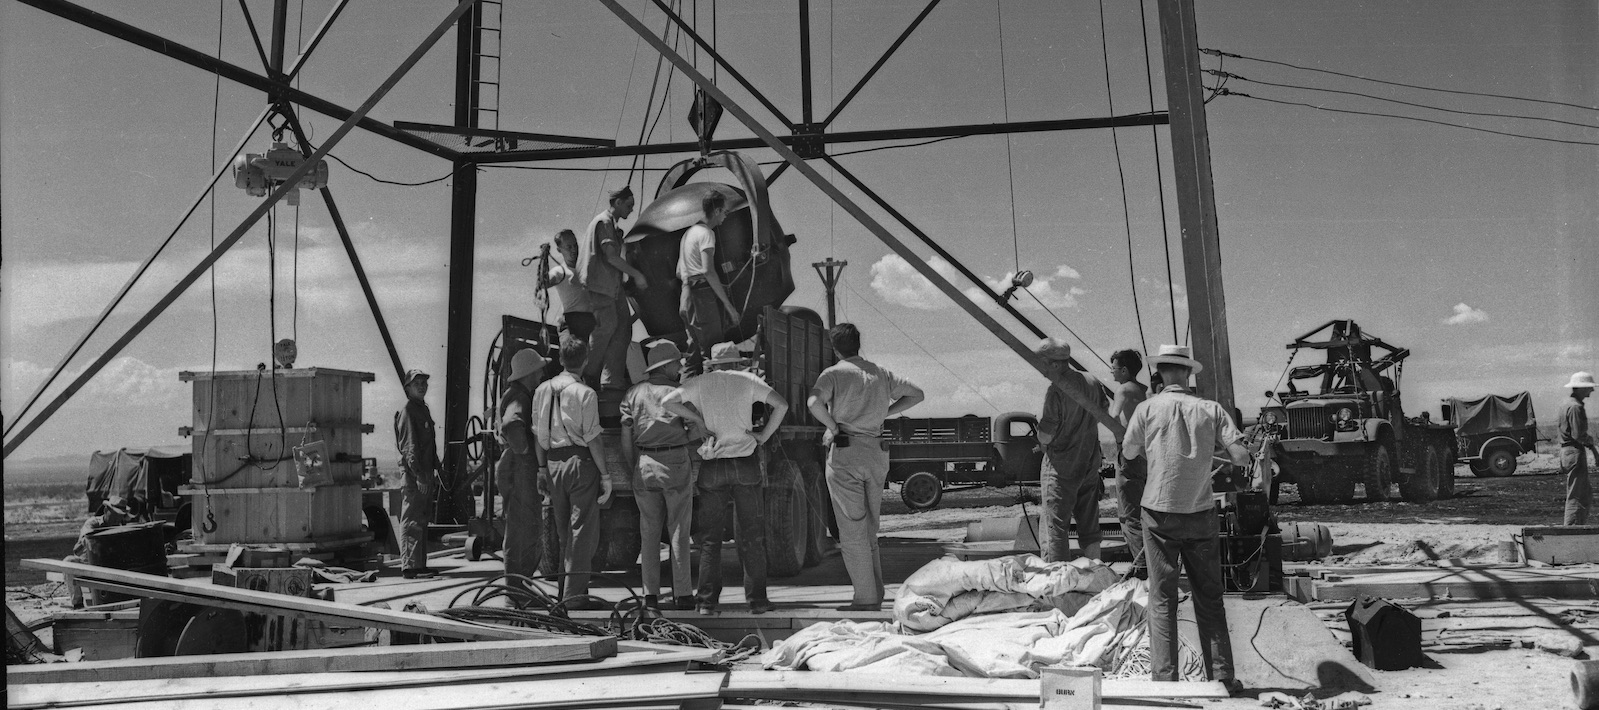 A group of men surrounding the Gadget, which is about to be lifted out of a truckbed and up into the tower.